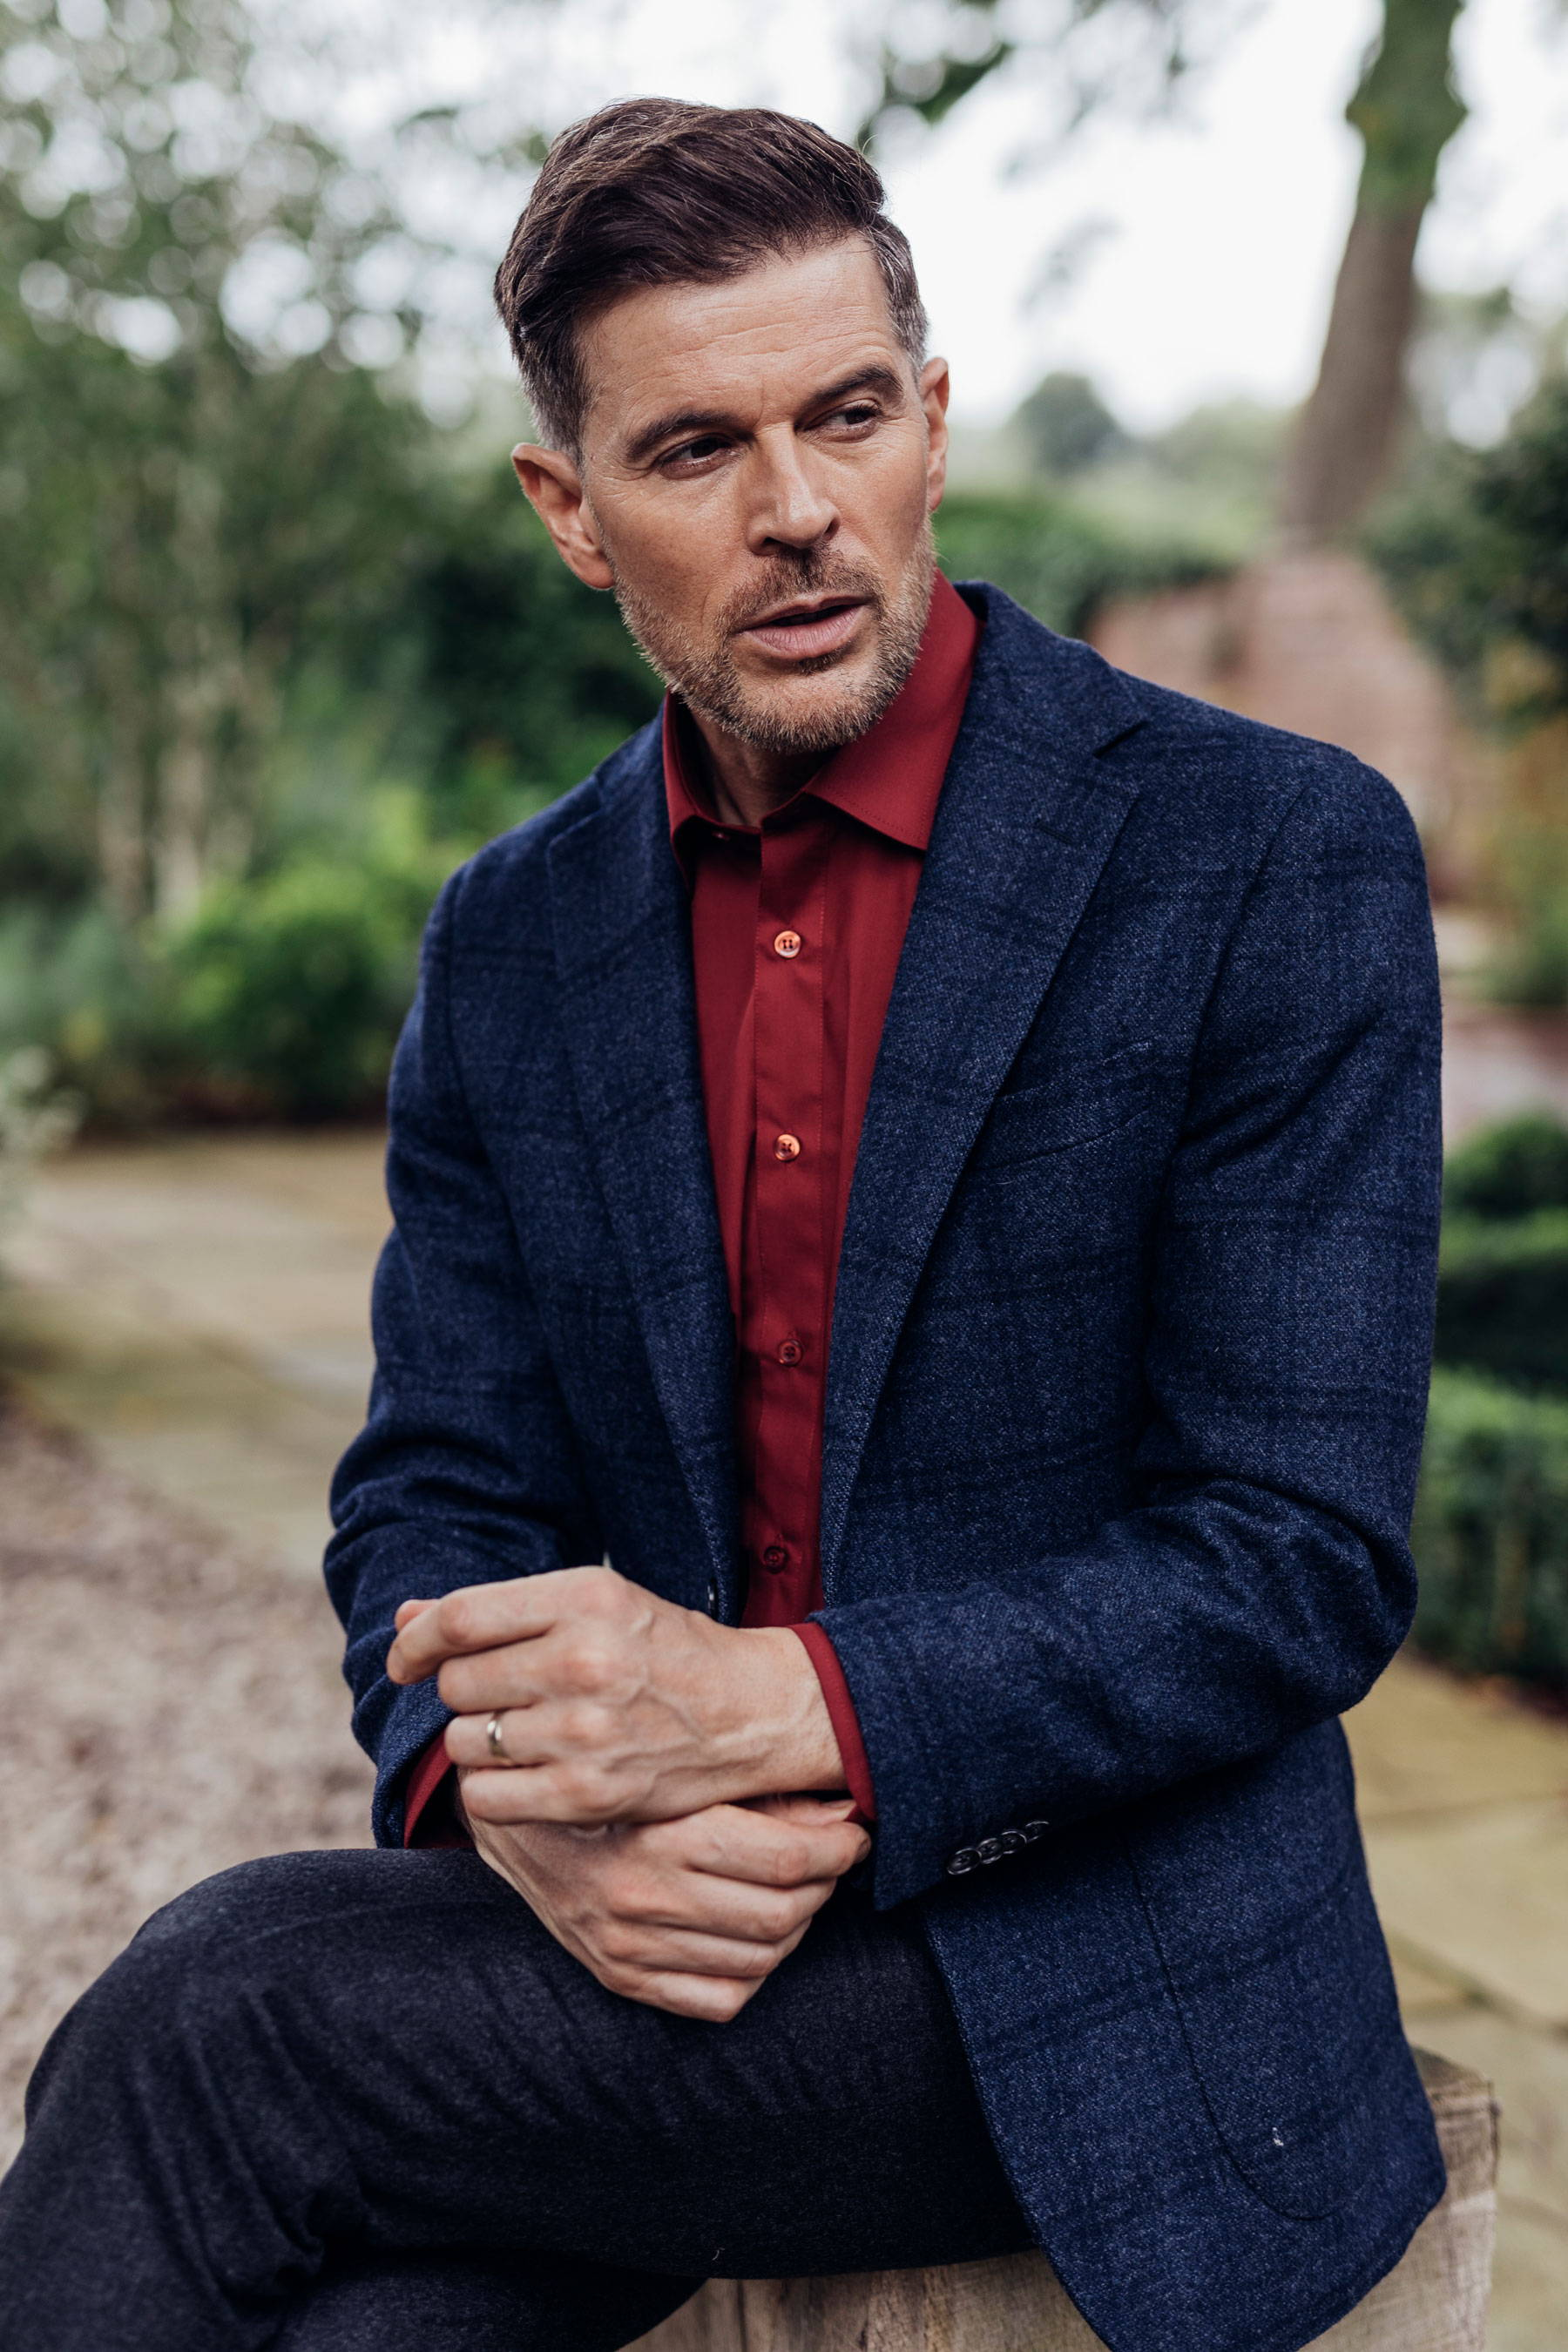 Man in burgundy shirt and navy suit